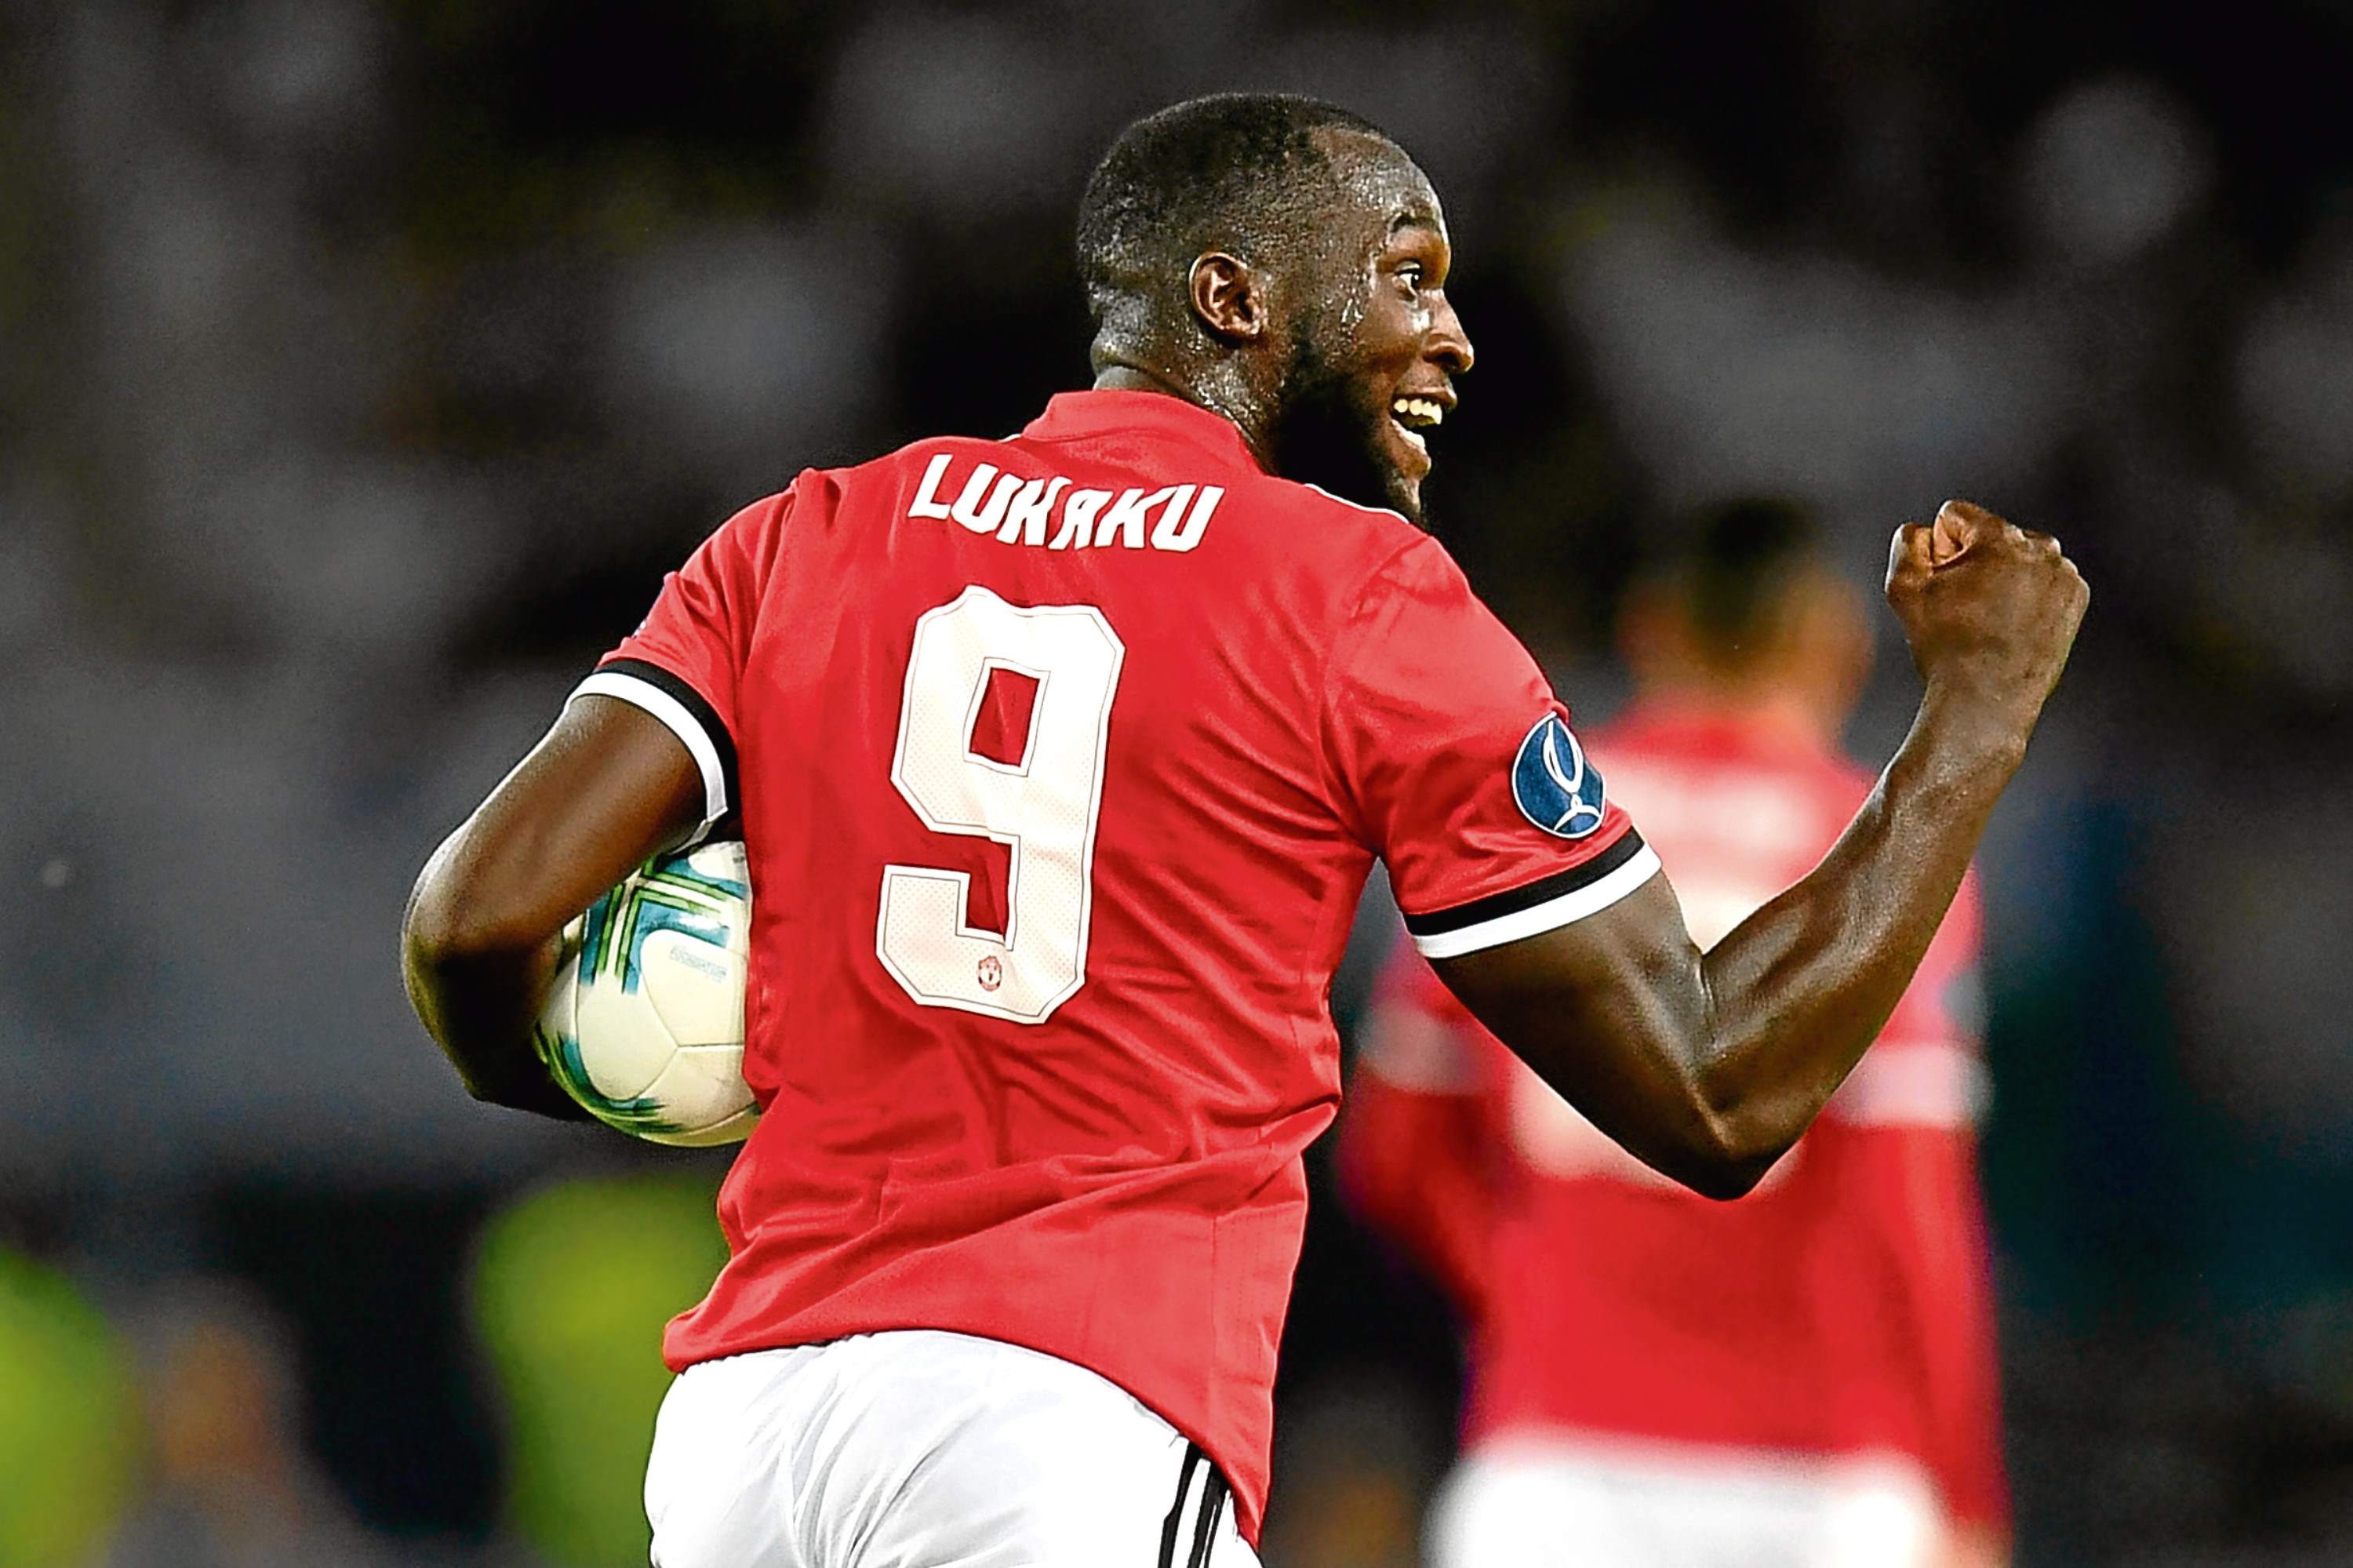 Romelu Lukaku of Manchester United (Dan Mullan/Getty Images)